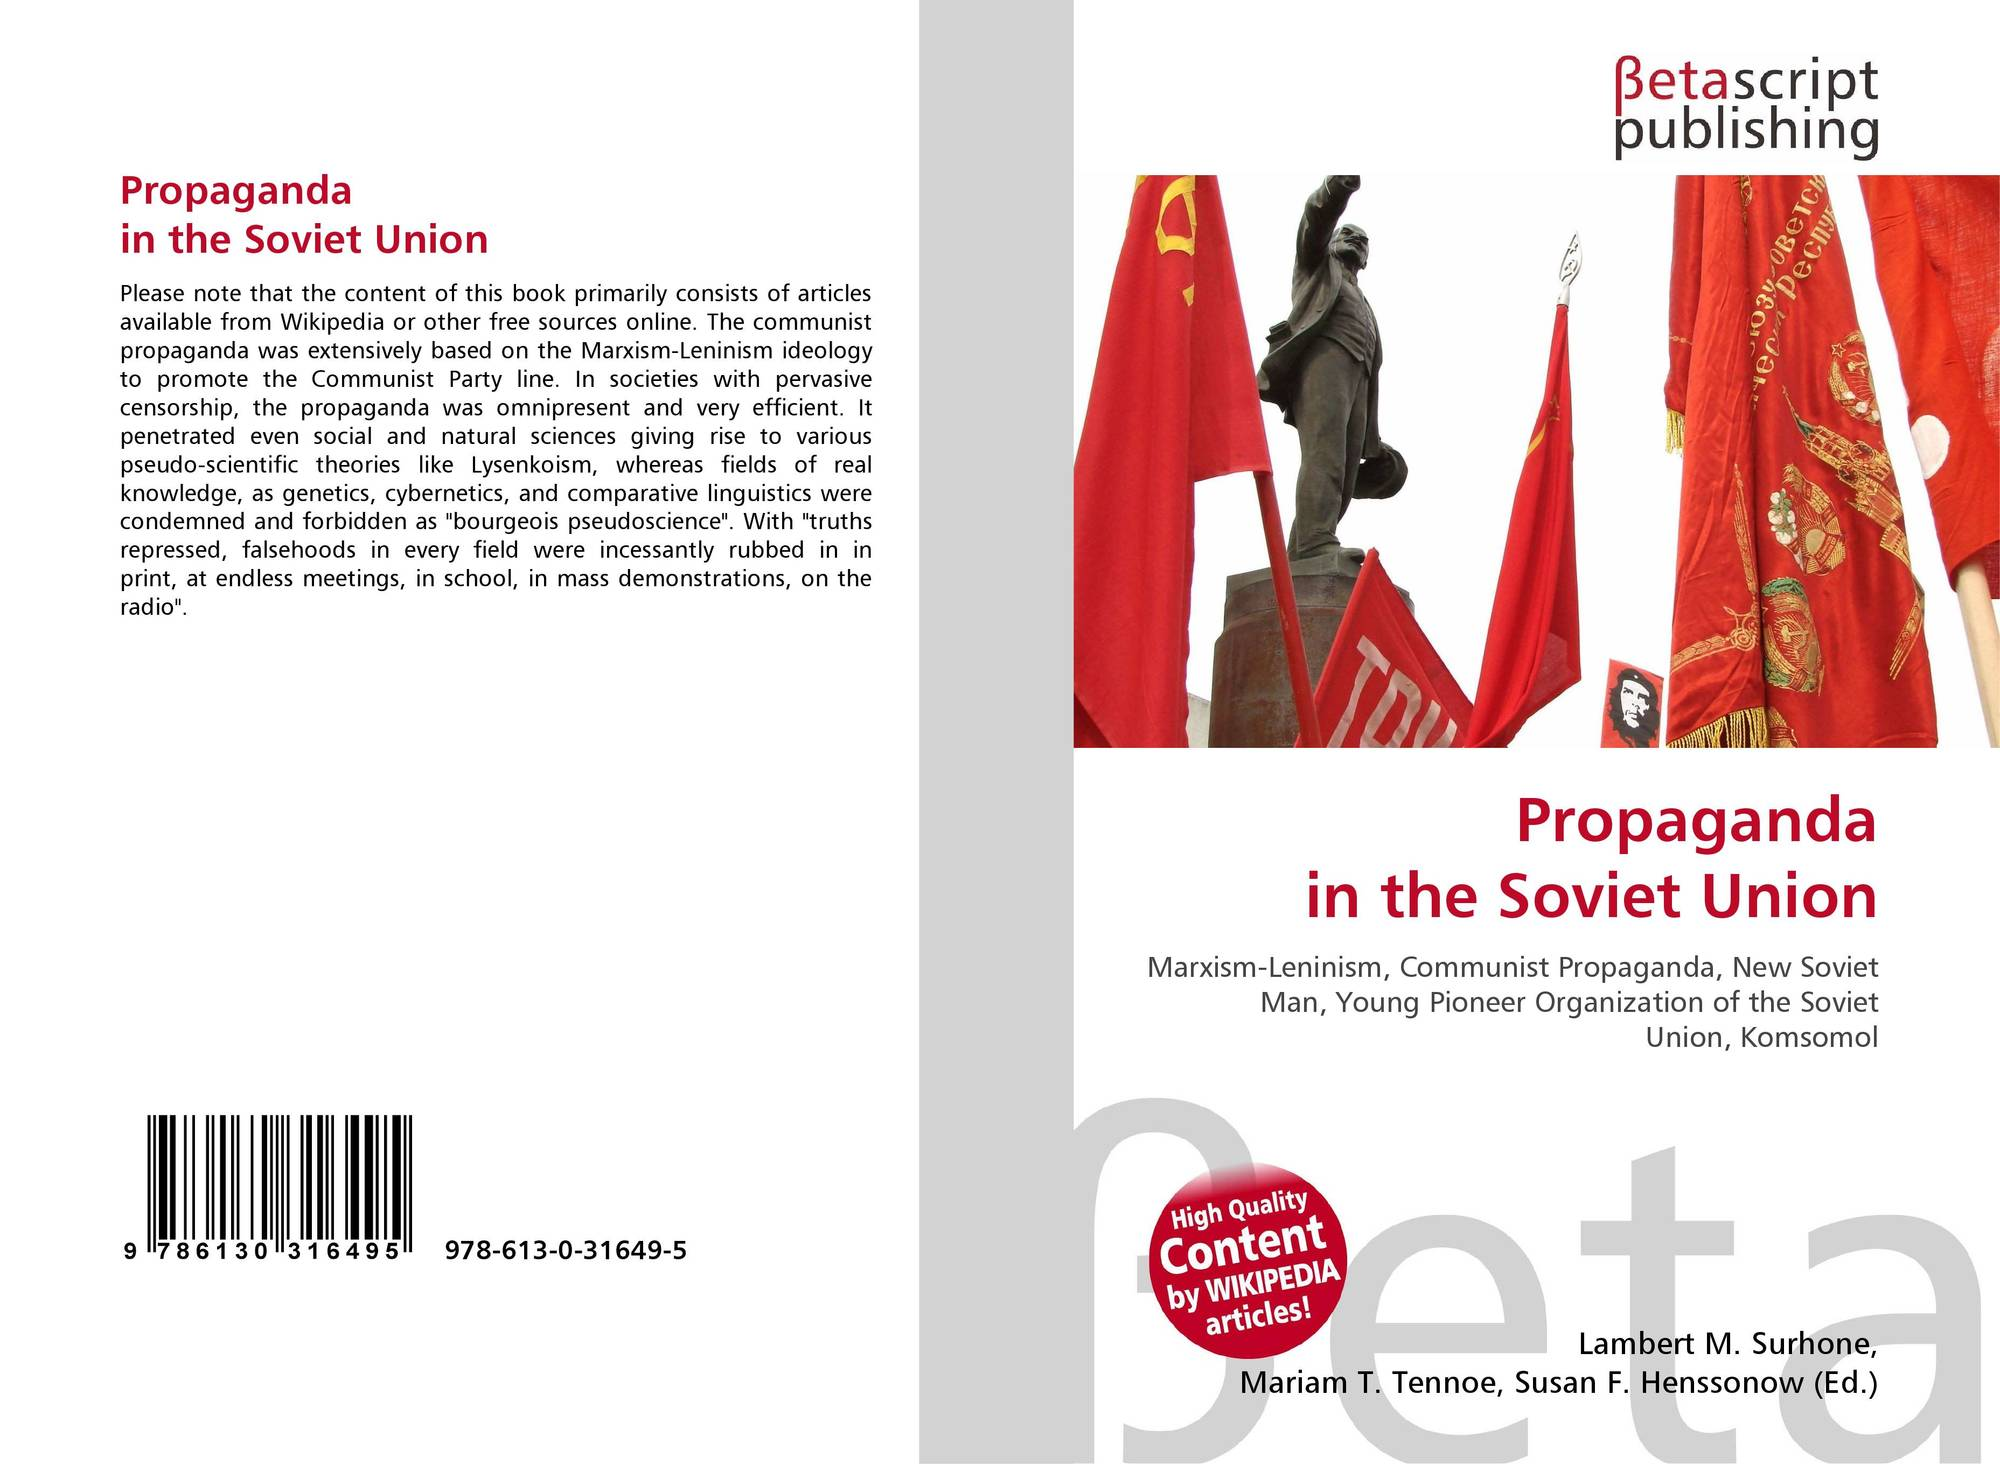 economic problems in the ussr after the second world war essay An analysis of the soviet economic growth from the 1950's to the collapse of ussr (second draft)  after the first world war, the 1917's revolution and the.